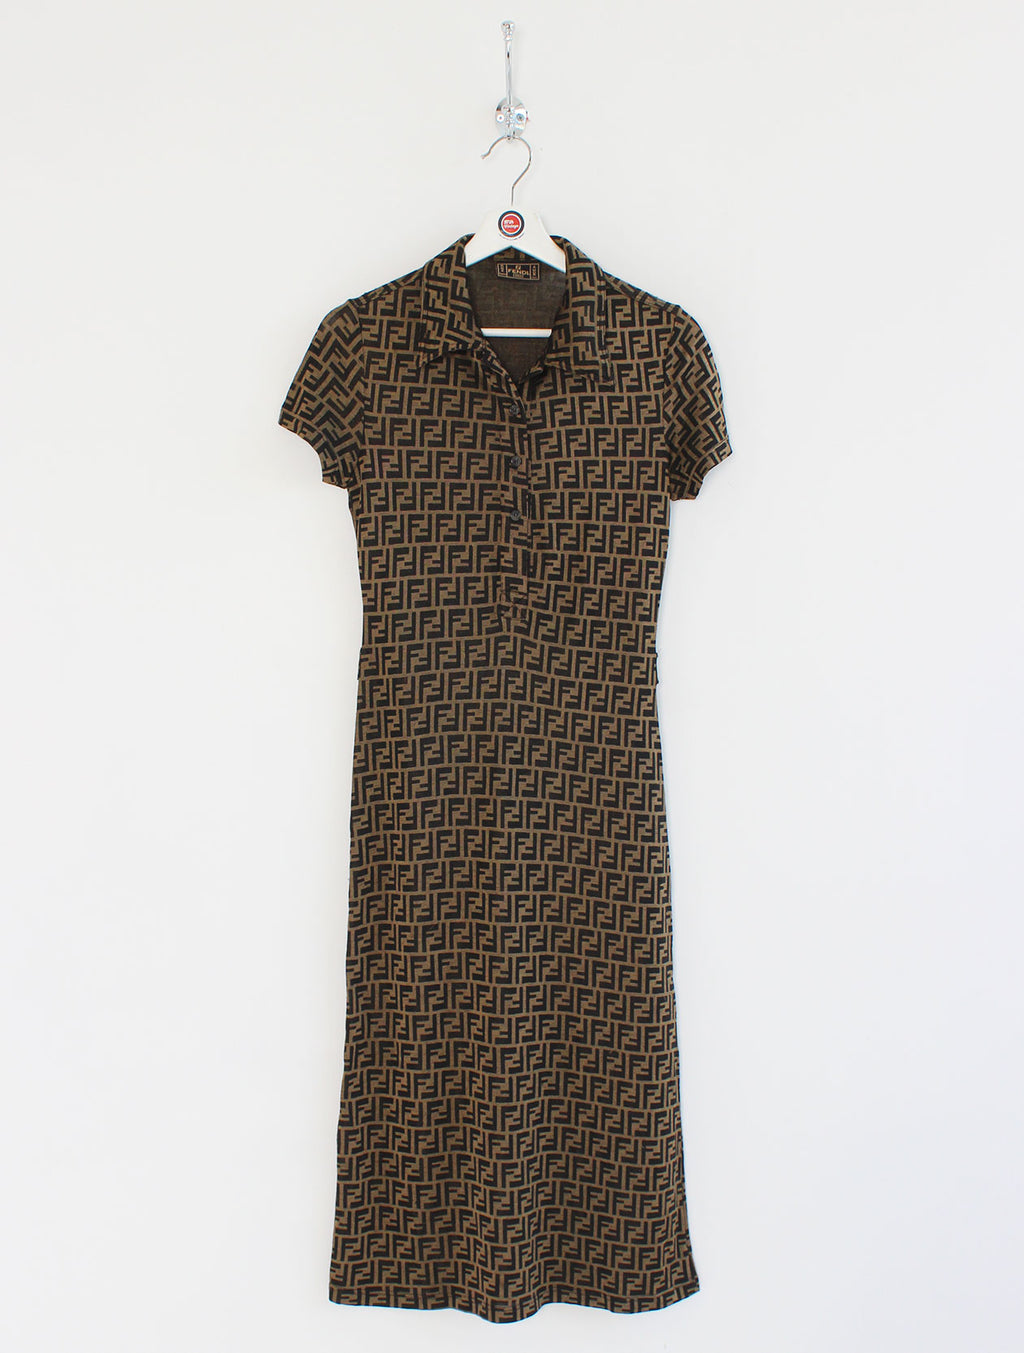 Women's Fendi Zucca Monogram Dress (S)